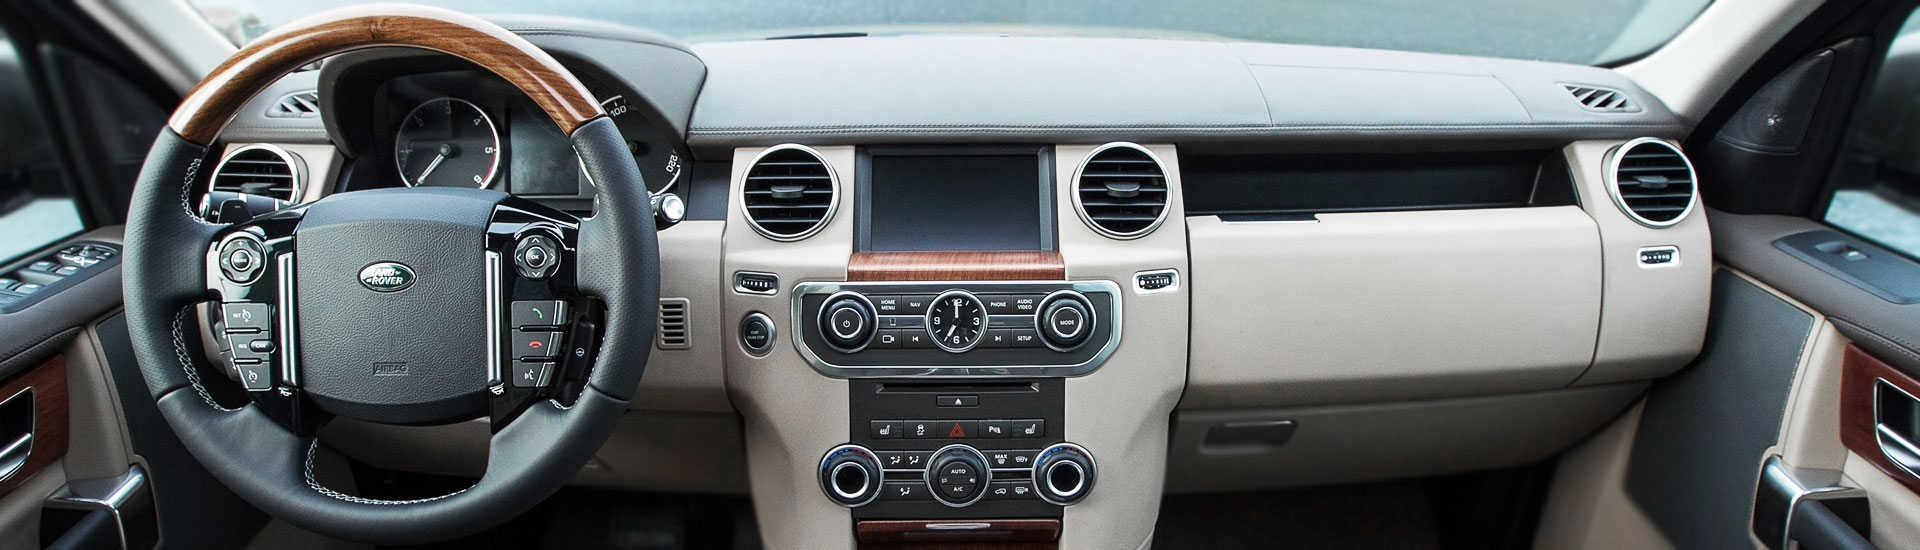 2004 Land Rover Range Rover Custom Dash Kits